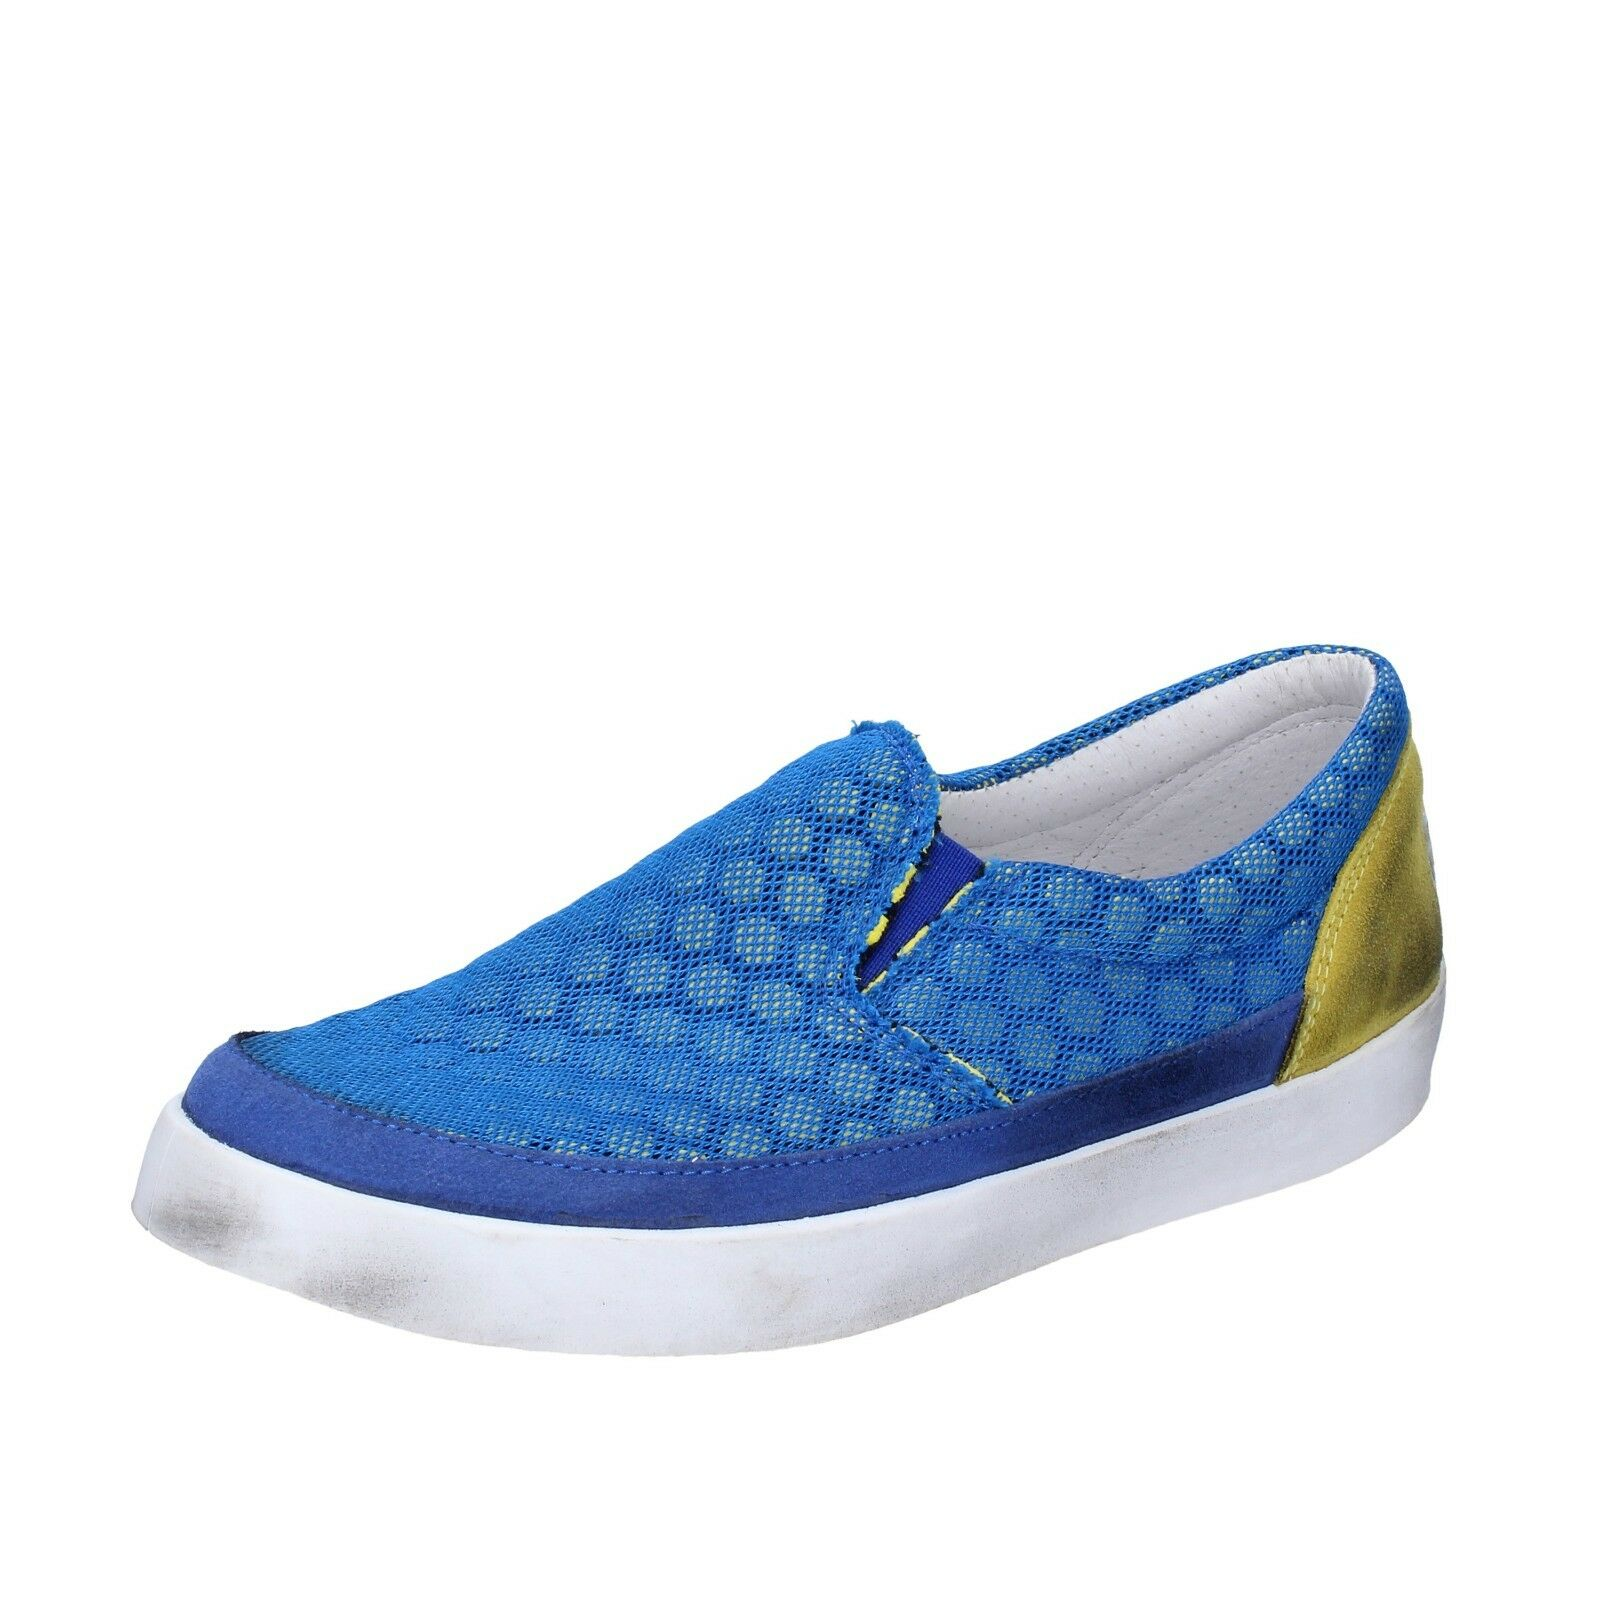 Womens shoes 2 Star 37 EU Slip On bluee Yellow Suede Leather bt802-37